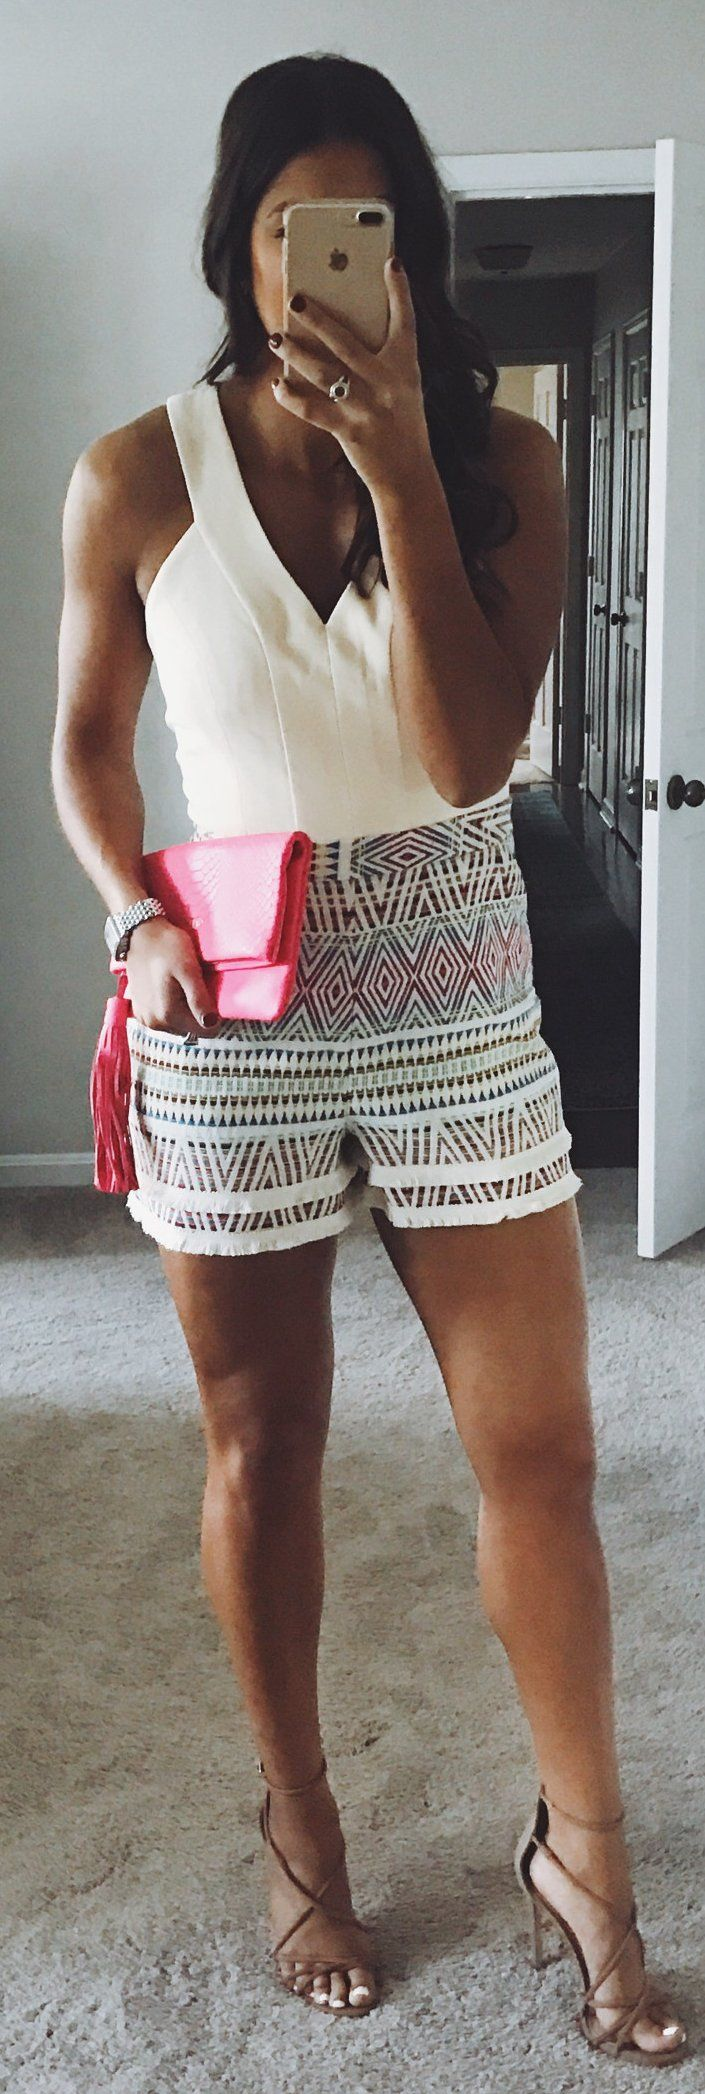 White Top / Printed Short / Brown Sandals